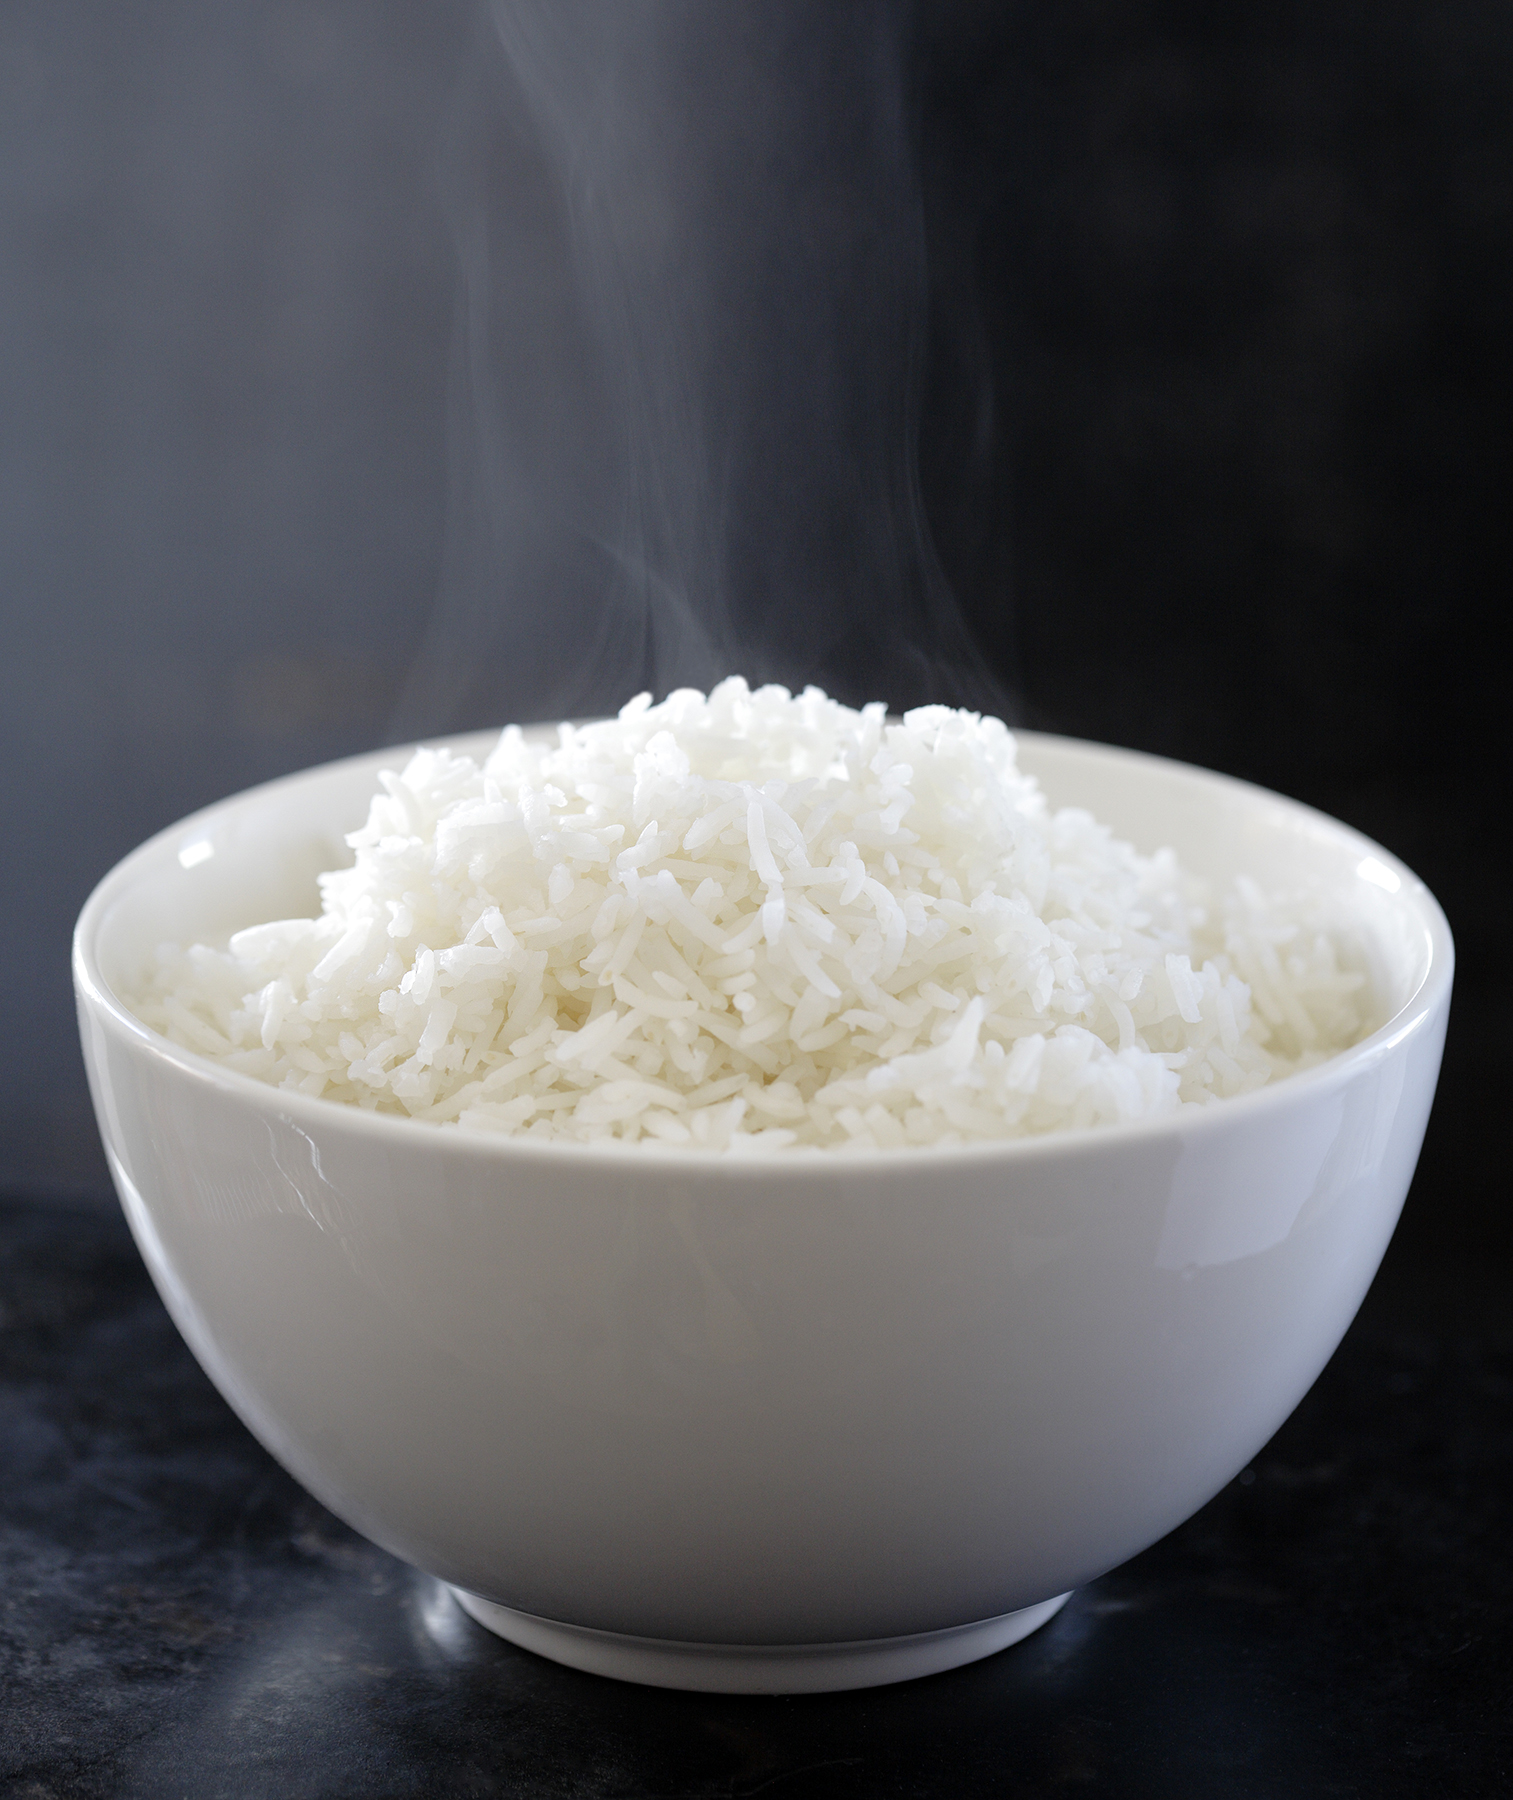 How to Cook Rice That's Perfectly Fluffy